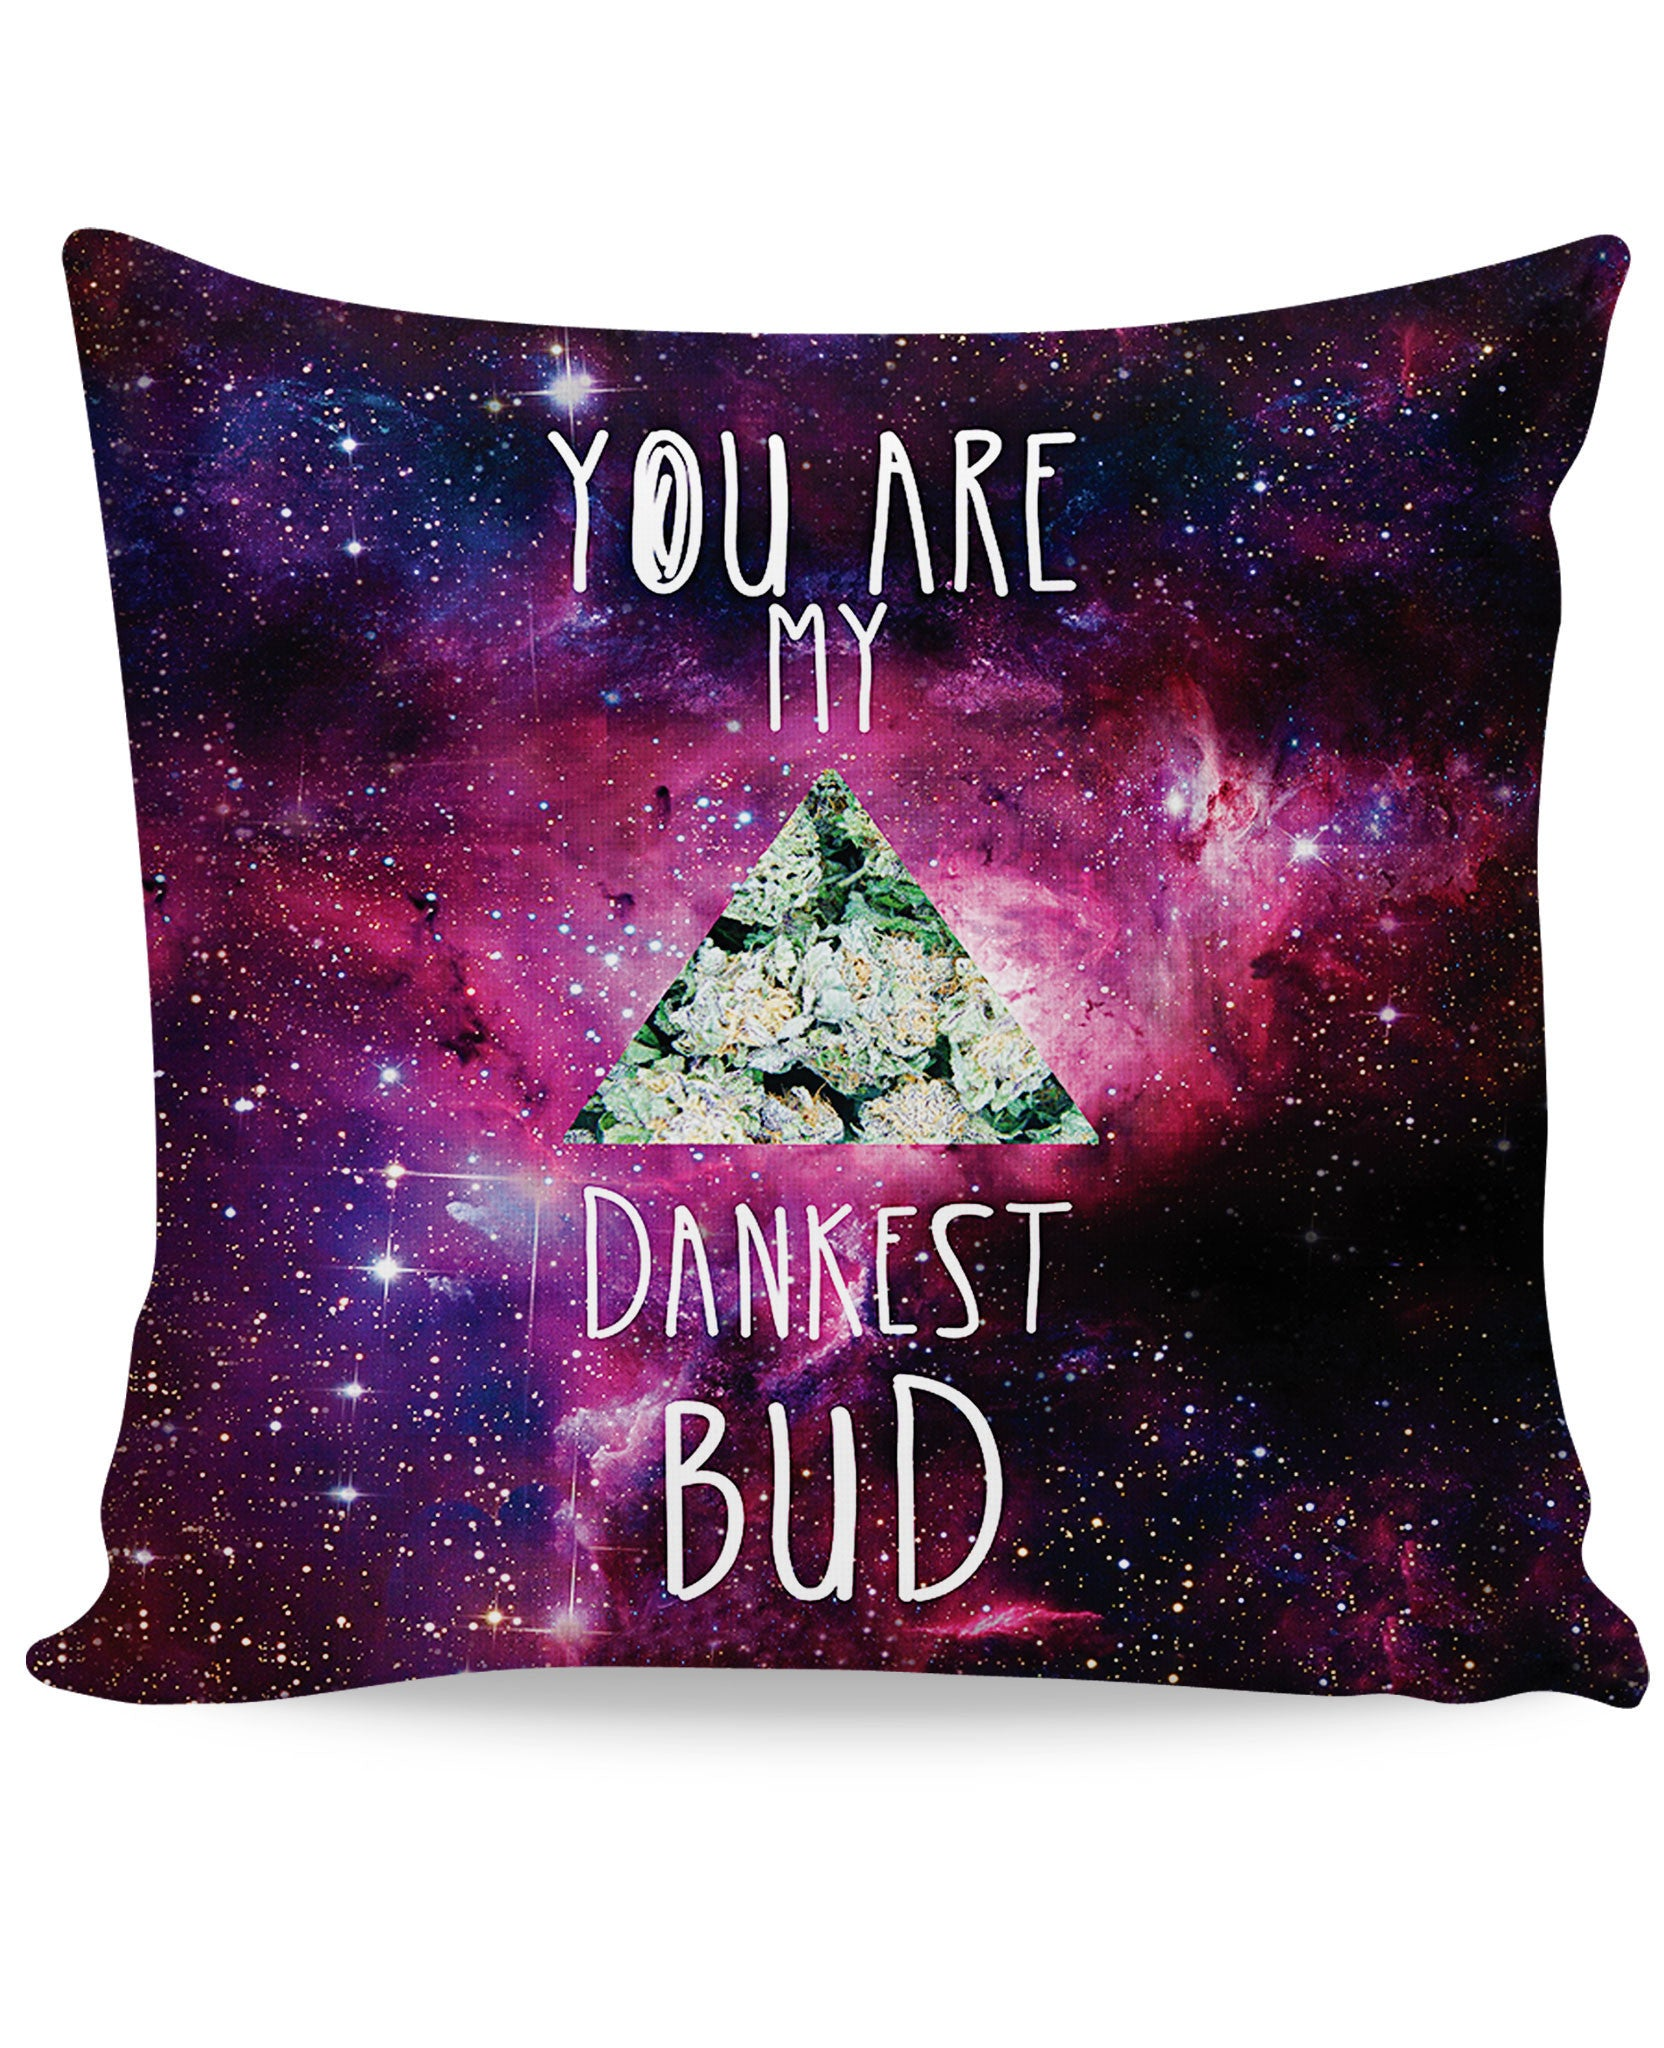 Dankest Bud Couch Pillow